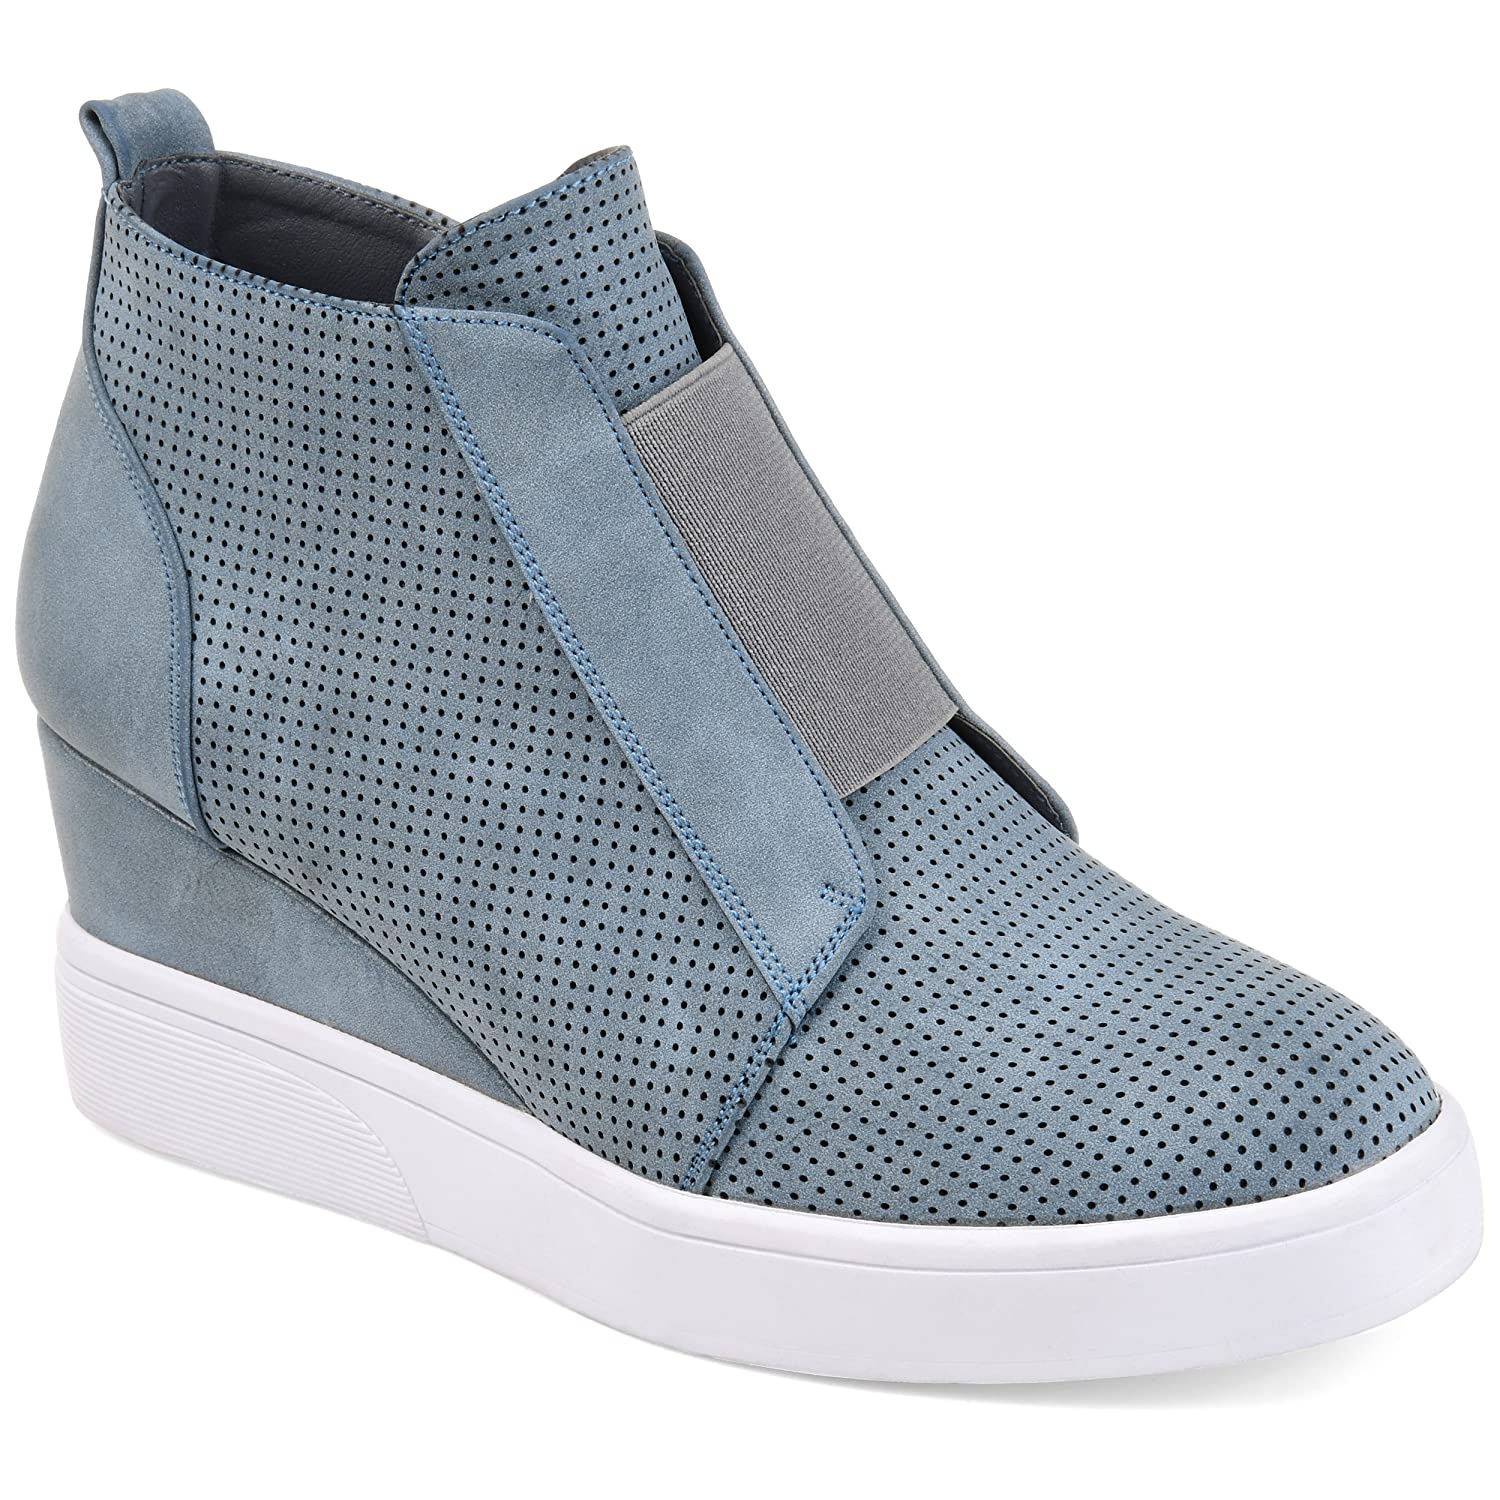 Journee Collection Womens Athleisure Laser-Cut Side-Zip Sneaker Wedges B07BYWF5SS 9 B(M) US|Blue